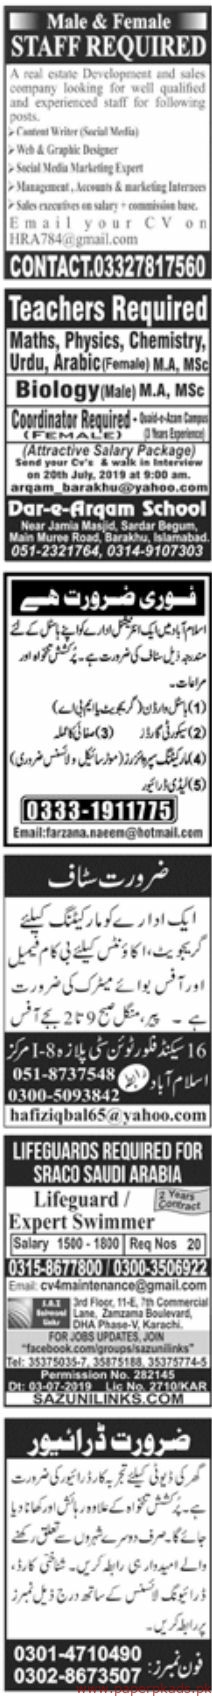 Jobs in Jang Newspaper 14 July 2019 Latest